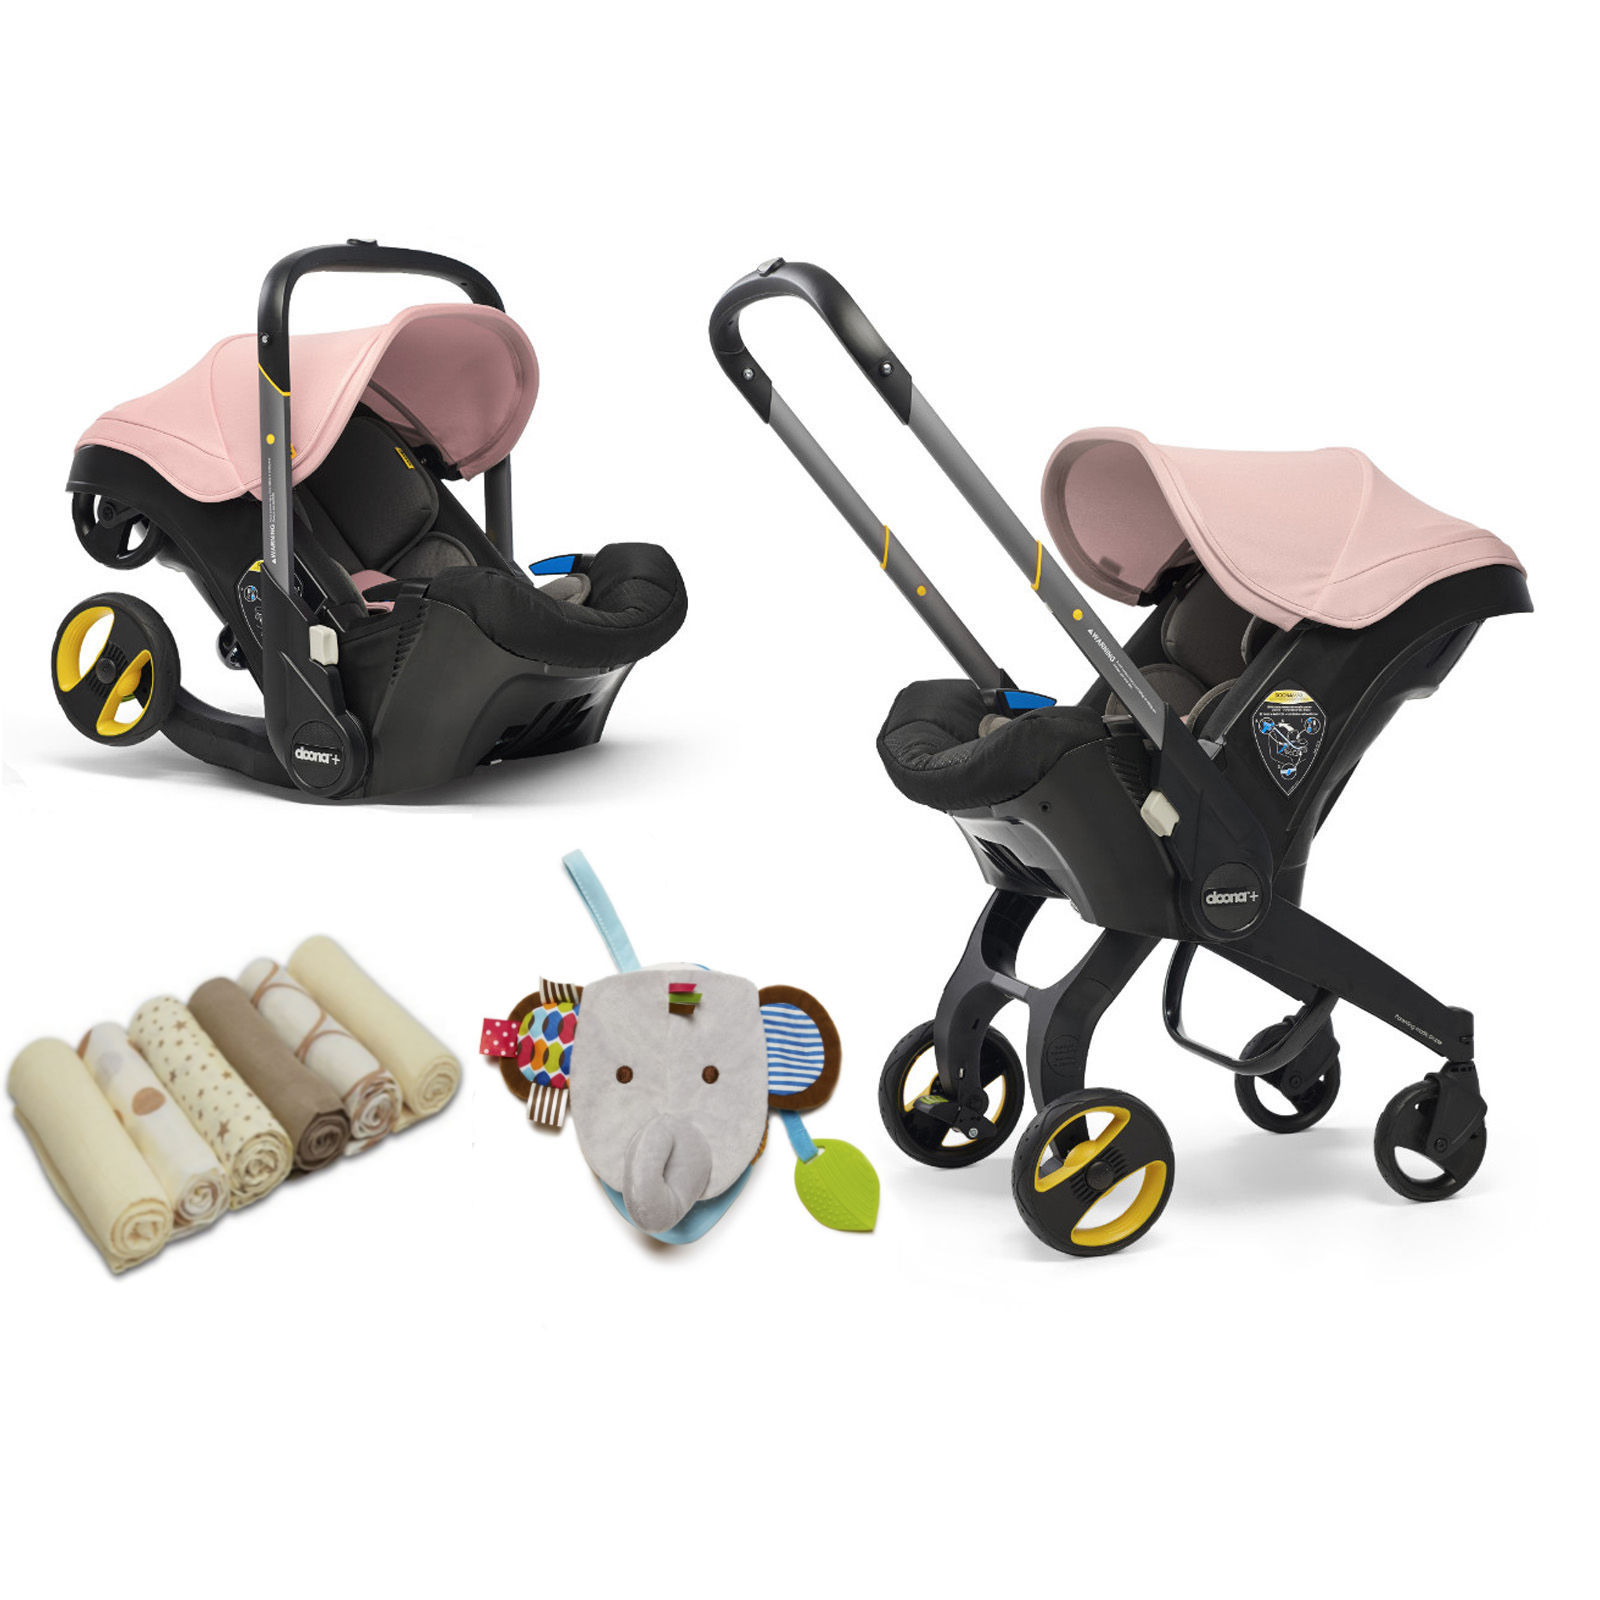 Doona Infant Car Seat Stroller Accessories Blush Pink